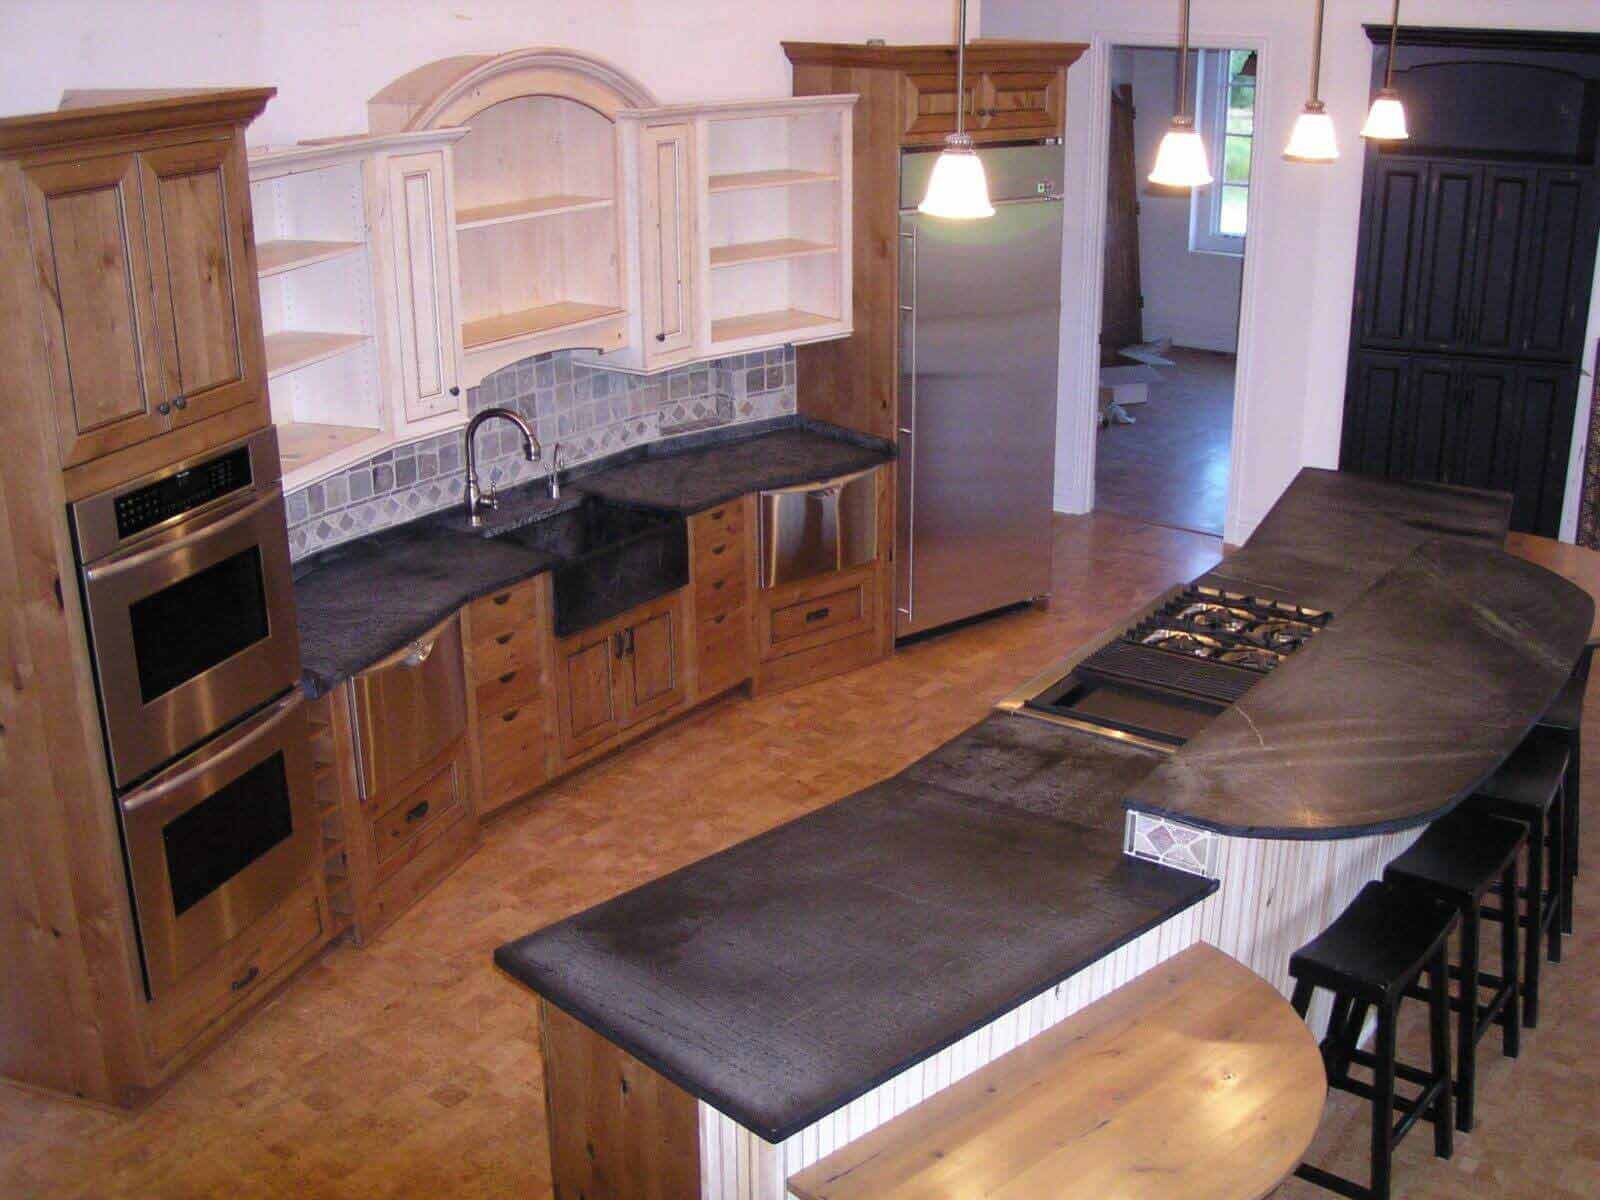 soapstone kitchen handles for drawers countertops aged